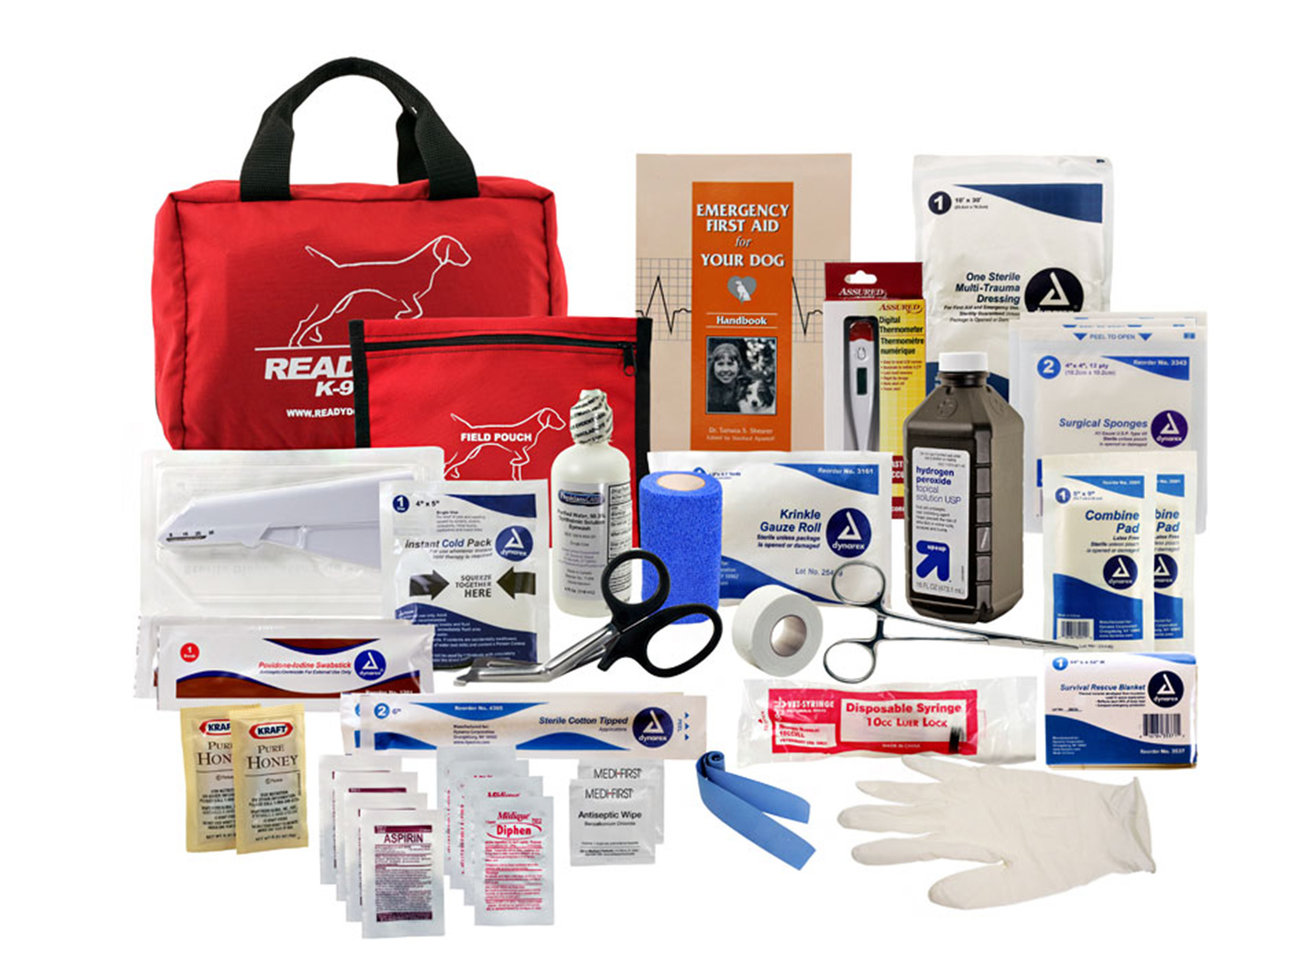 Ready-dog-First-aid-kit-petGG1215.jpg